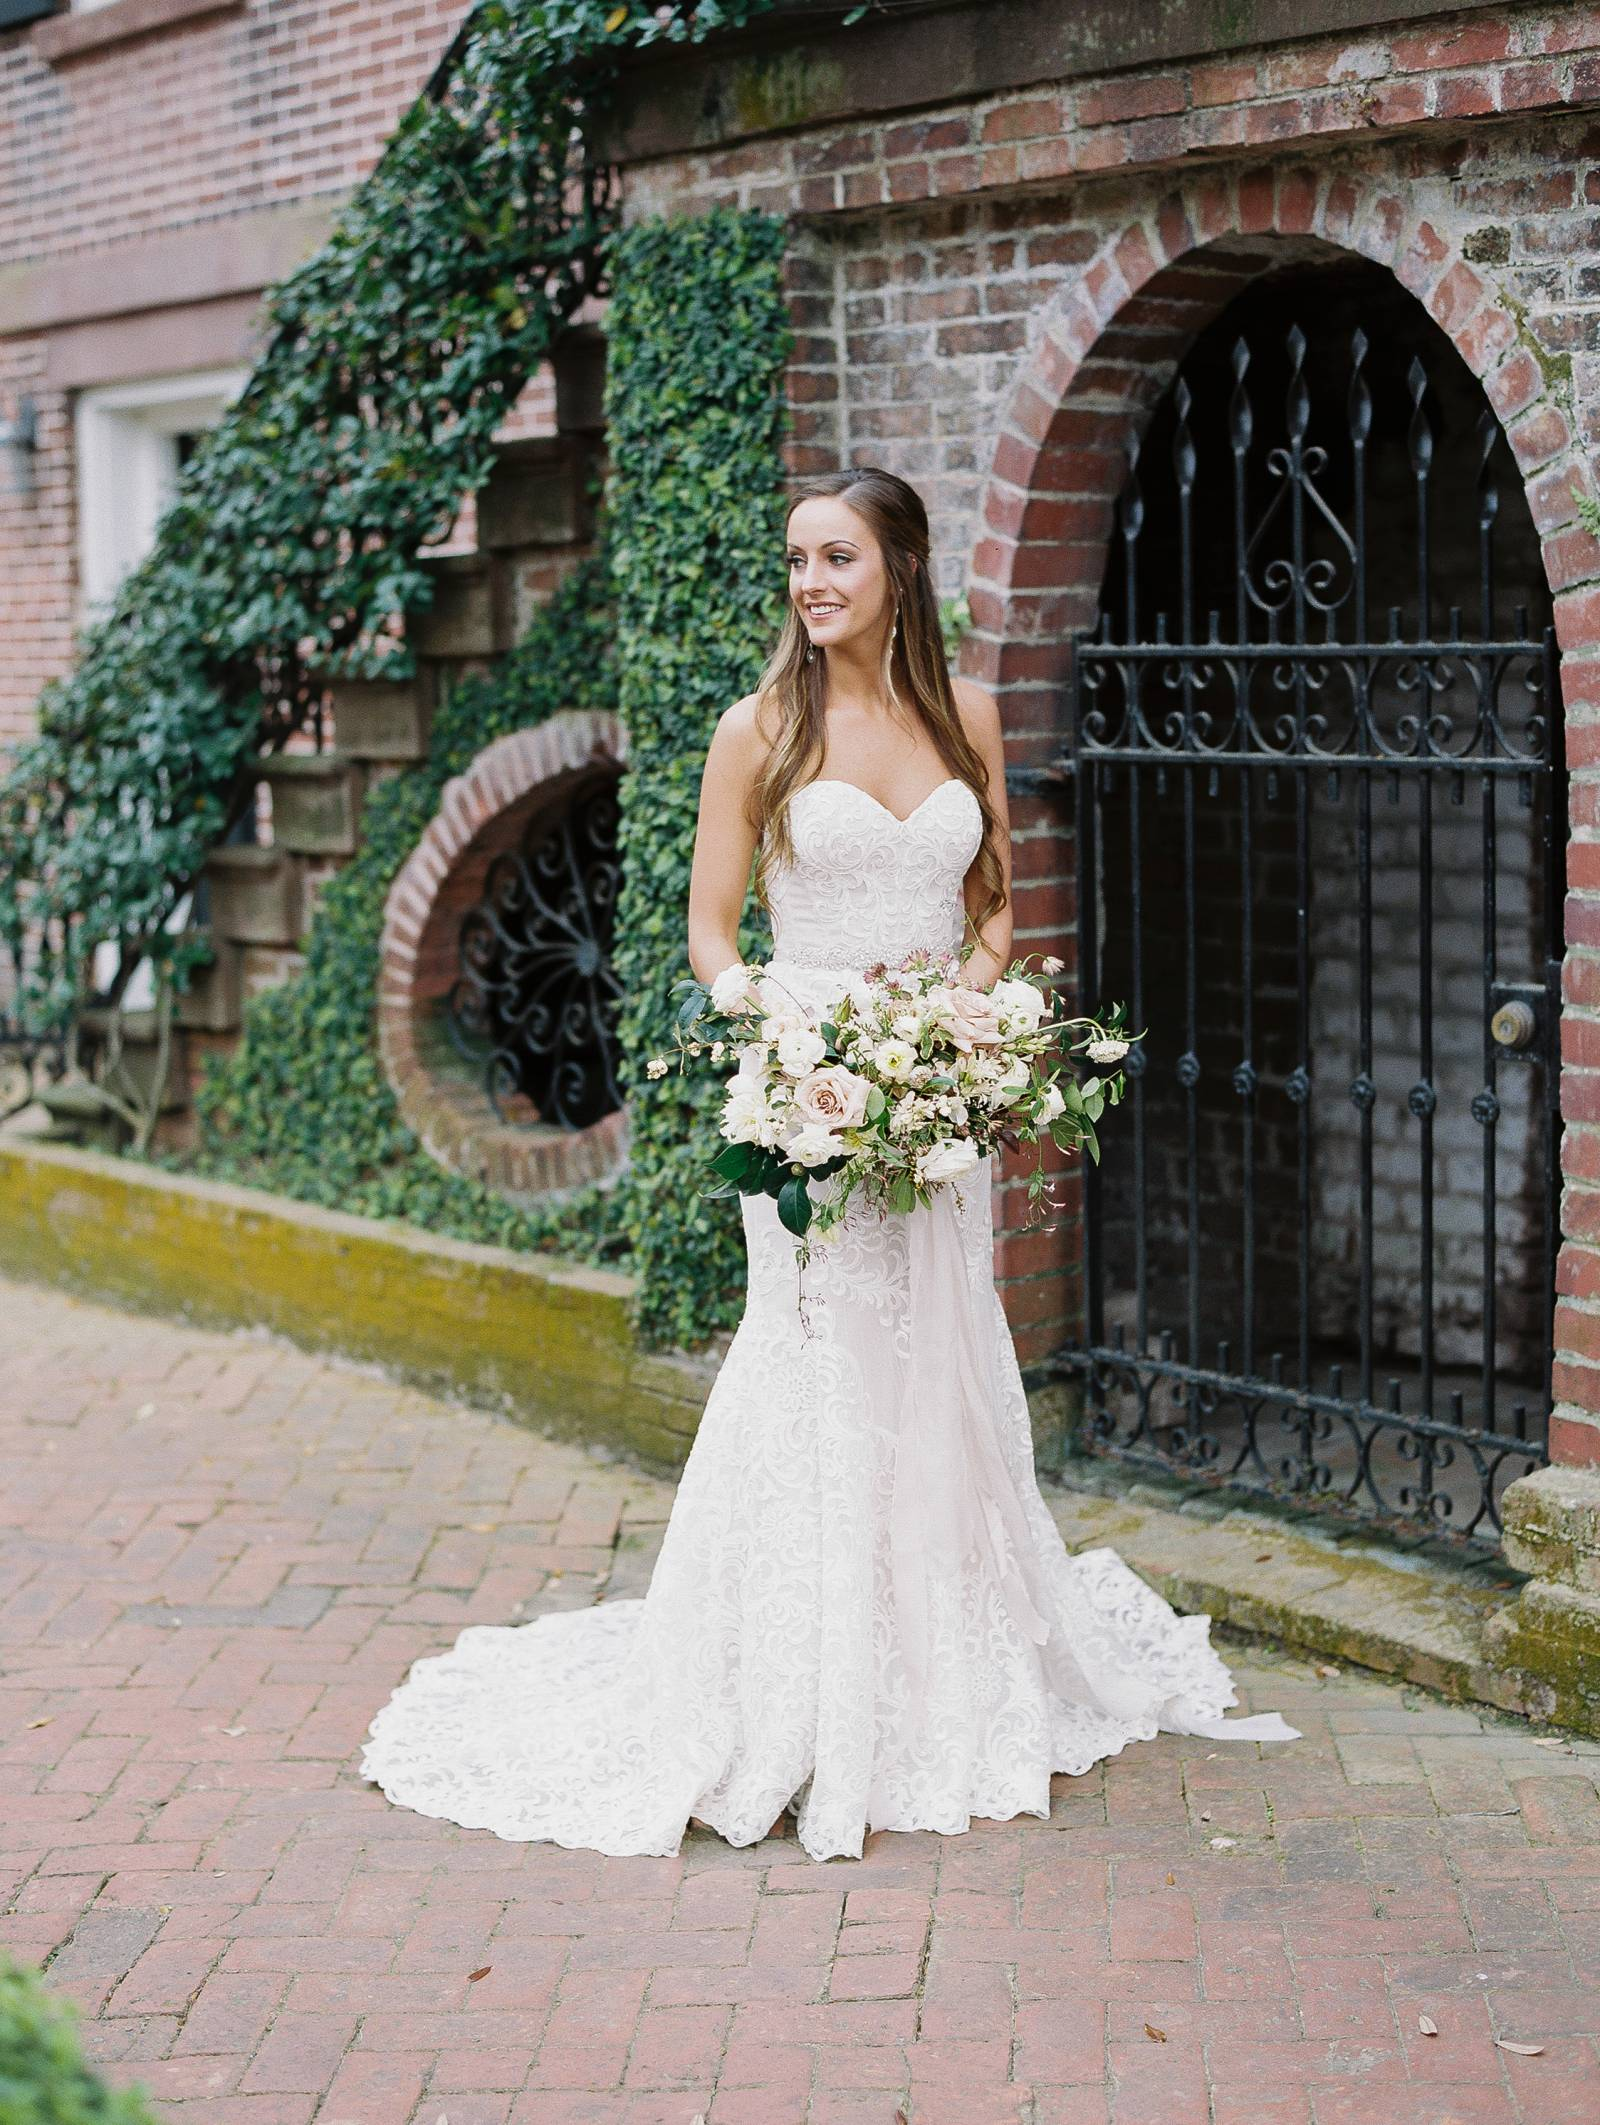 jessica-zimmerman-events-georgia-bridal-photoshoot-floral.jpg